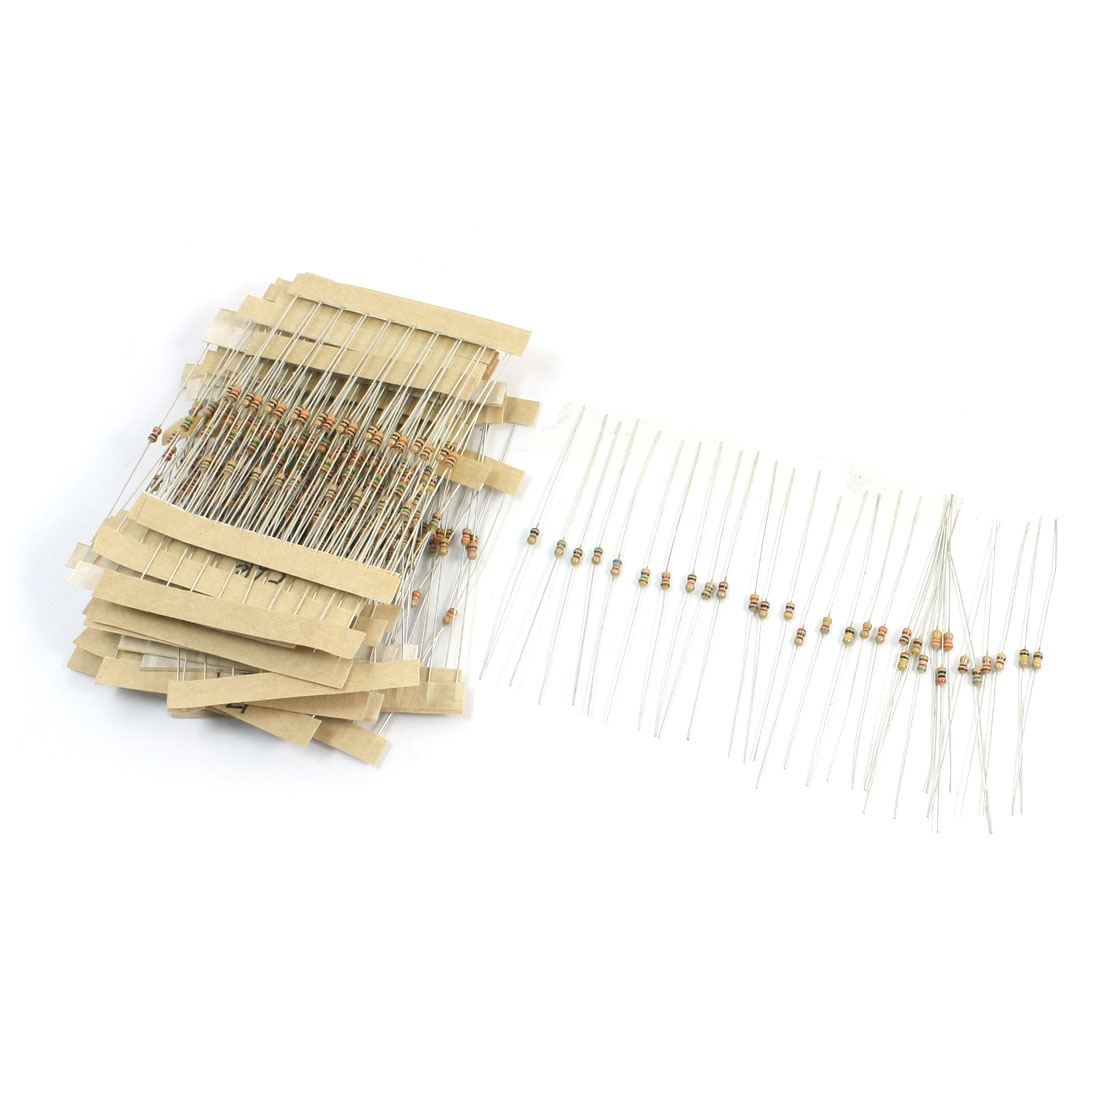 300pcs 30 Values Carbon Film Resistors 1-1M Ohm 5% 1/6W 1/8W Assortment Set